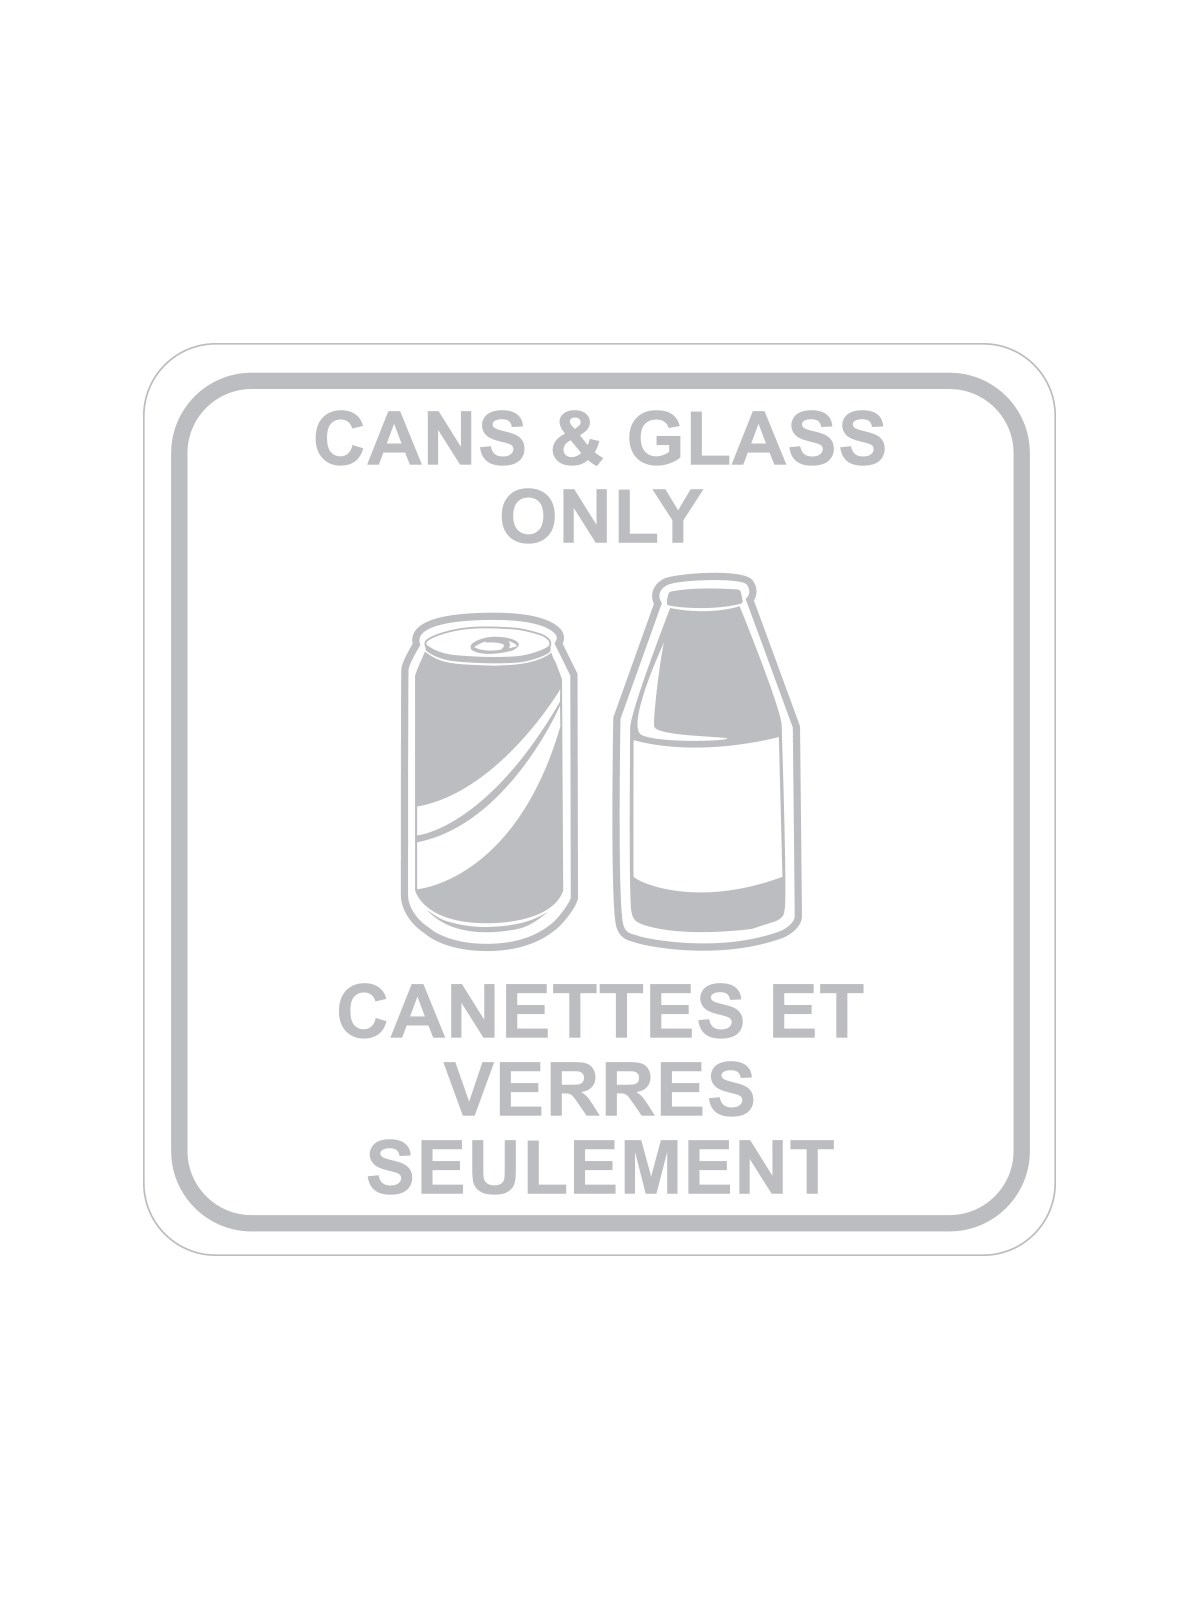 SQUARE LABEL CANS & GLASS ONLY - ENG/FRE title=